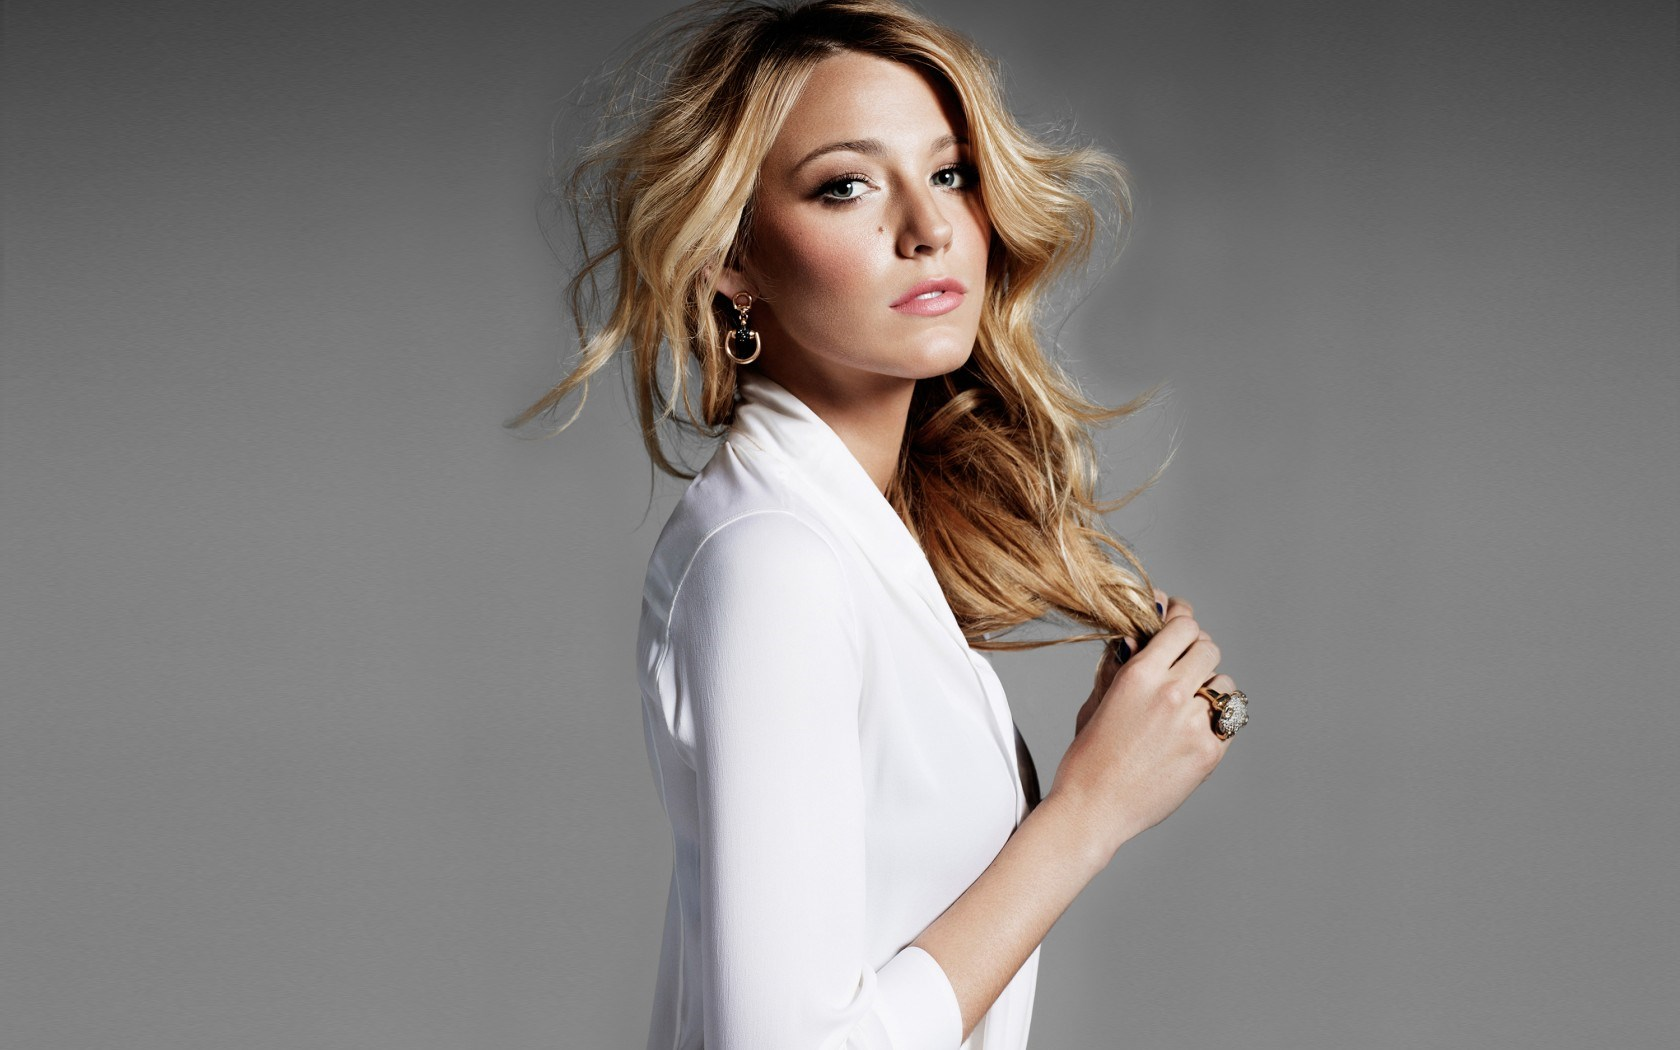 beautiful blake lively wallpaper 40545